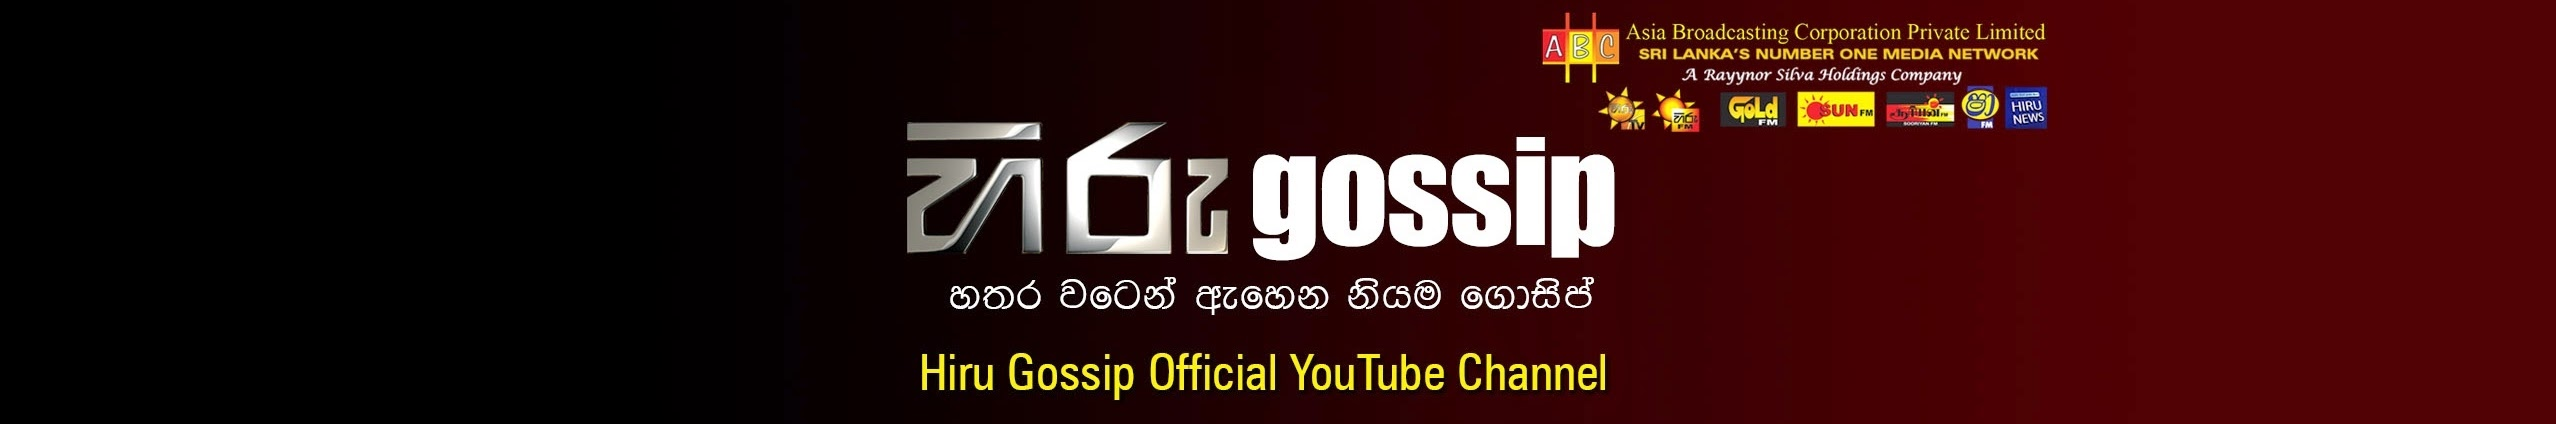 Hiru Gossip Youtube Channel Analytics And Report Powered By Noxinfluencer Mobile